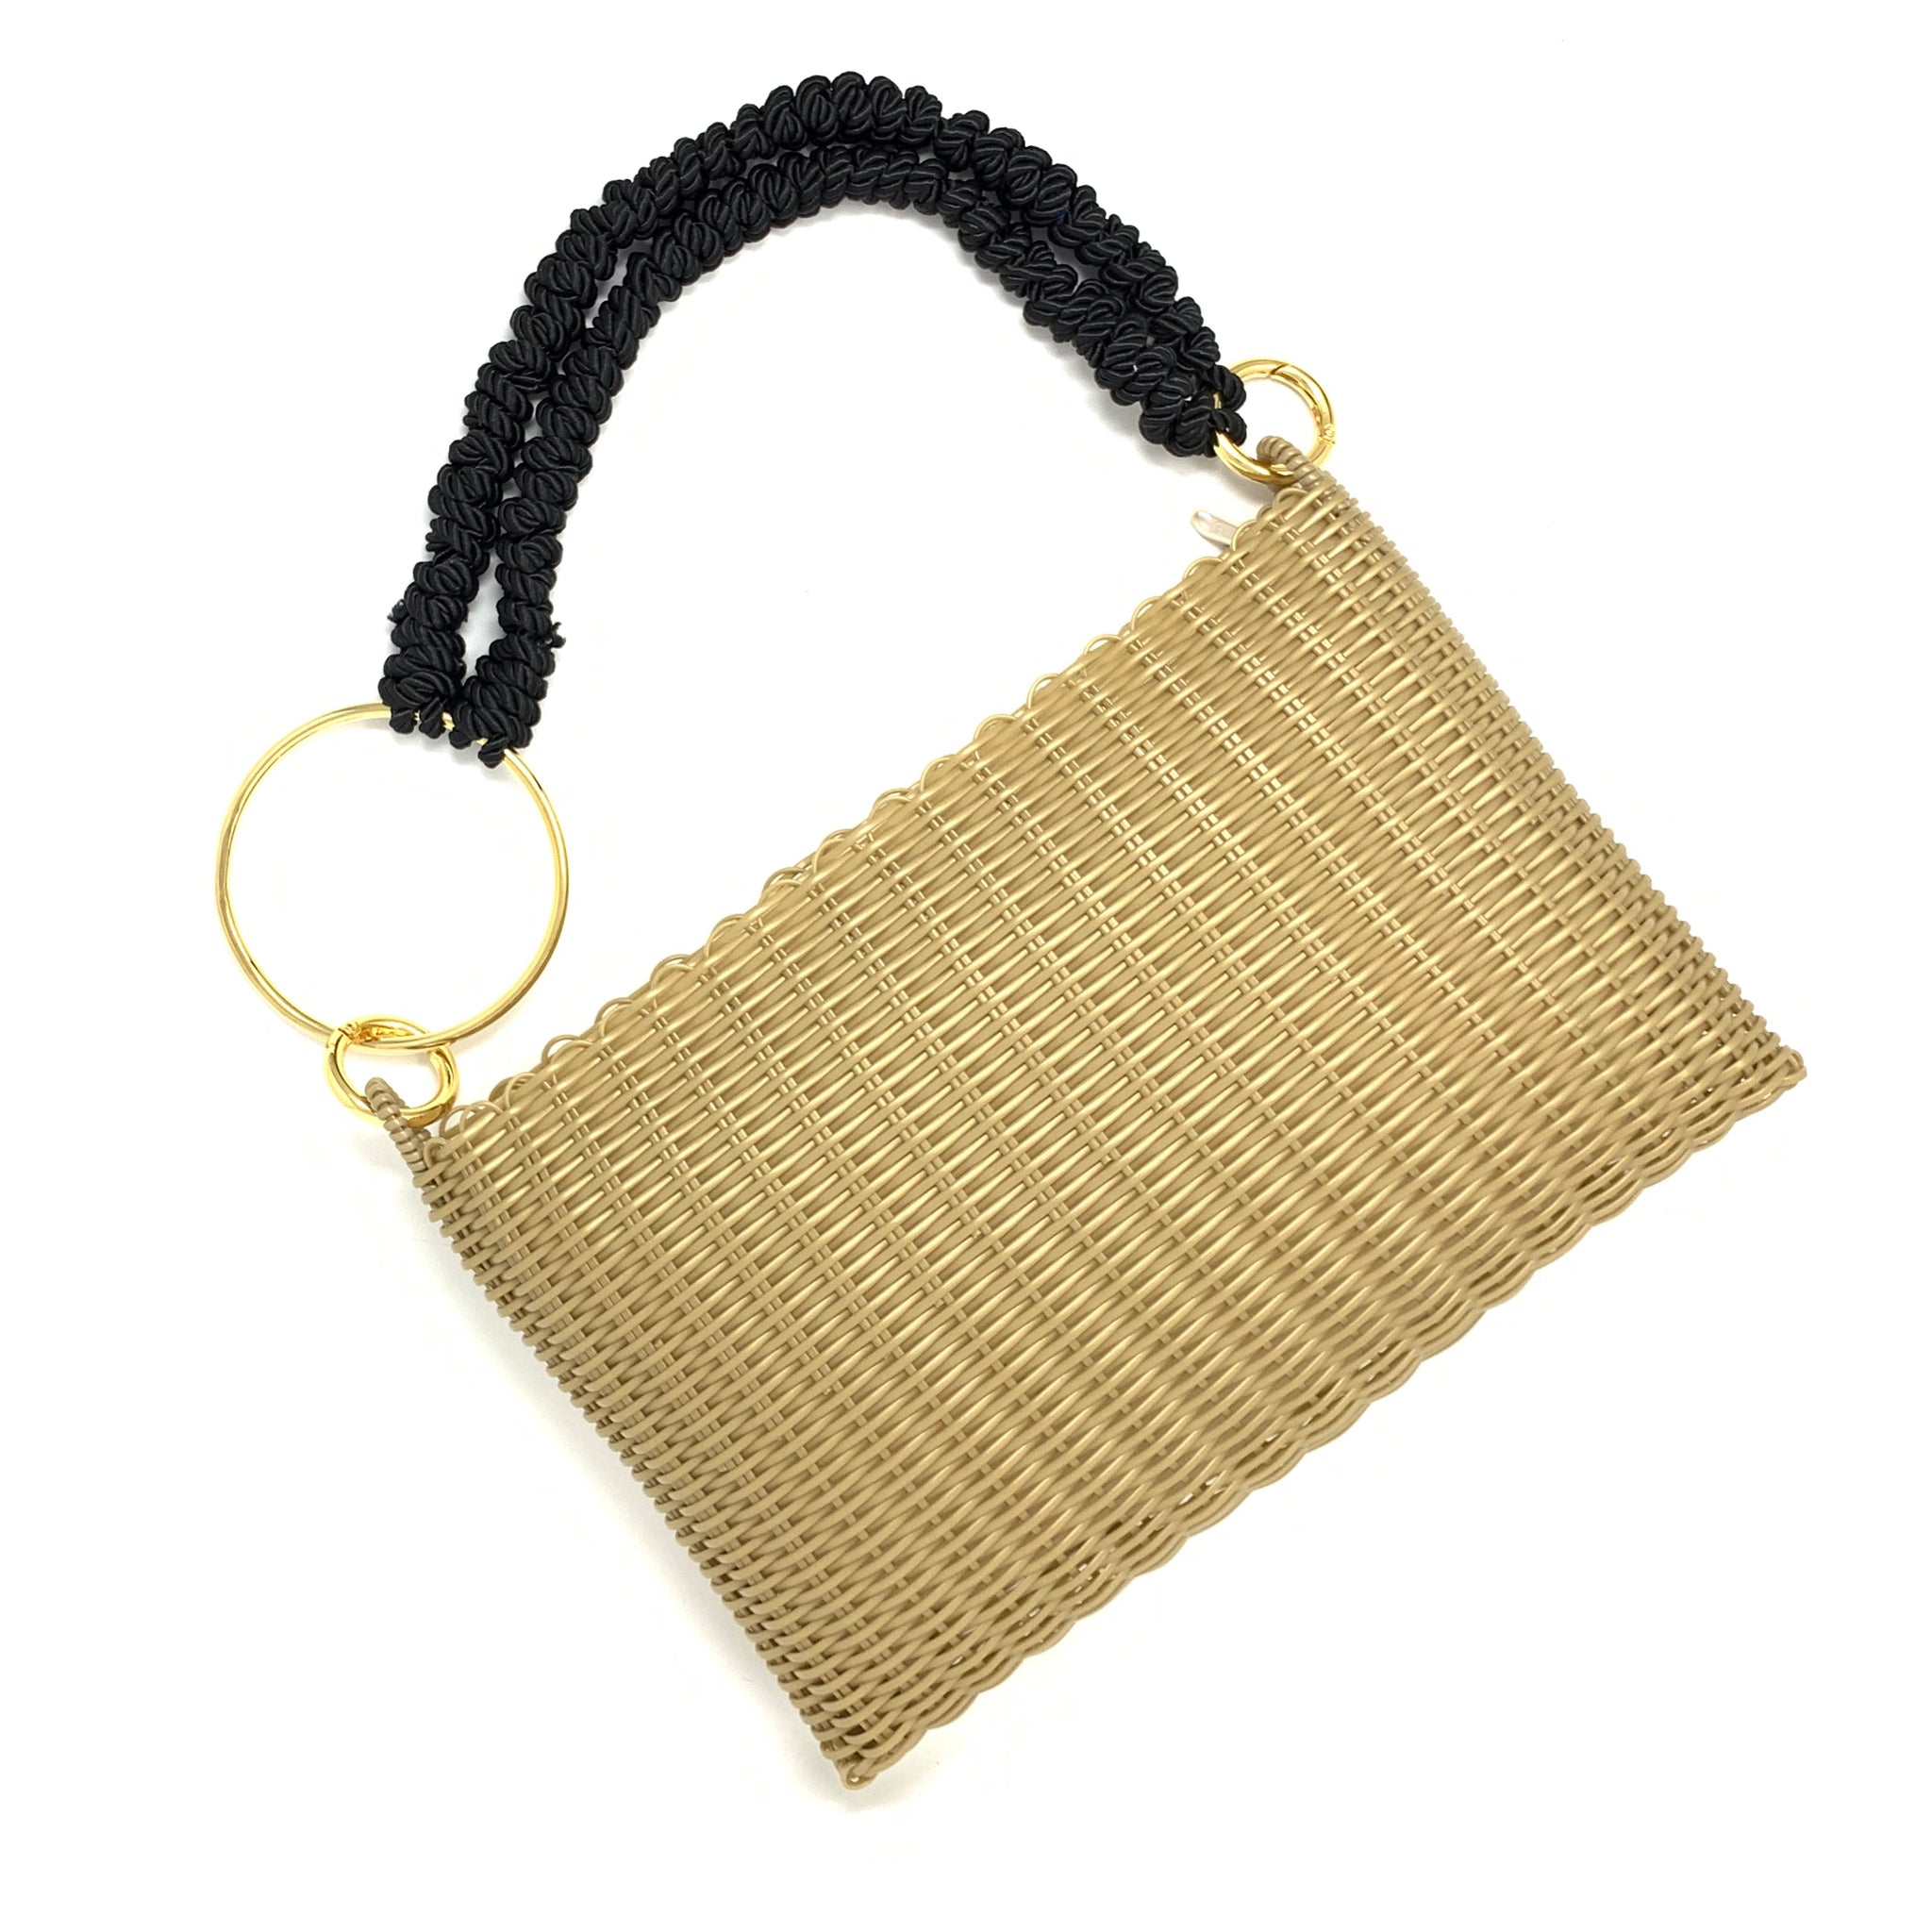 THE CIRCLE KNOTTED CLUTCH GOLD